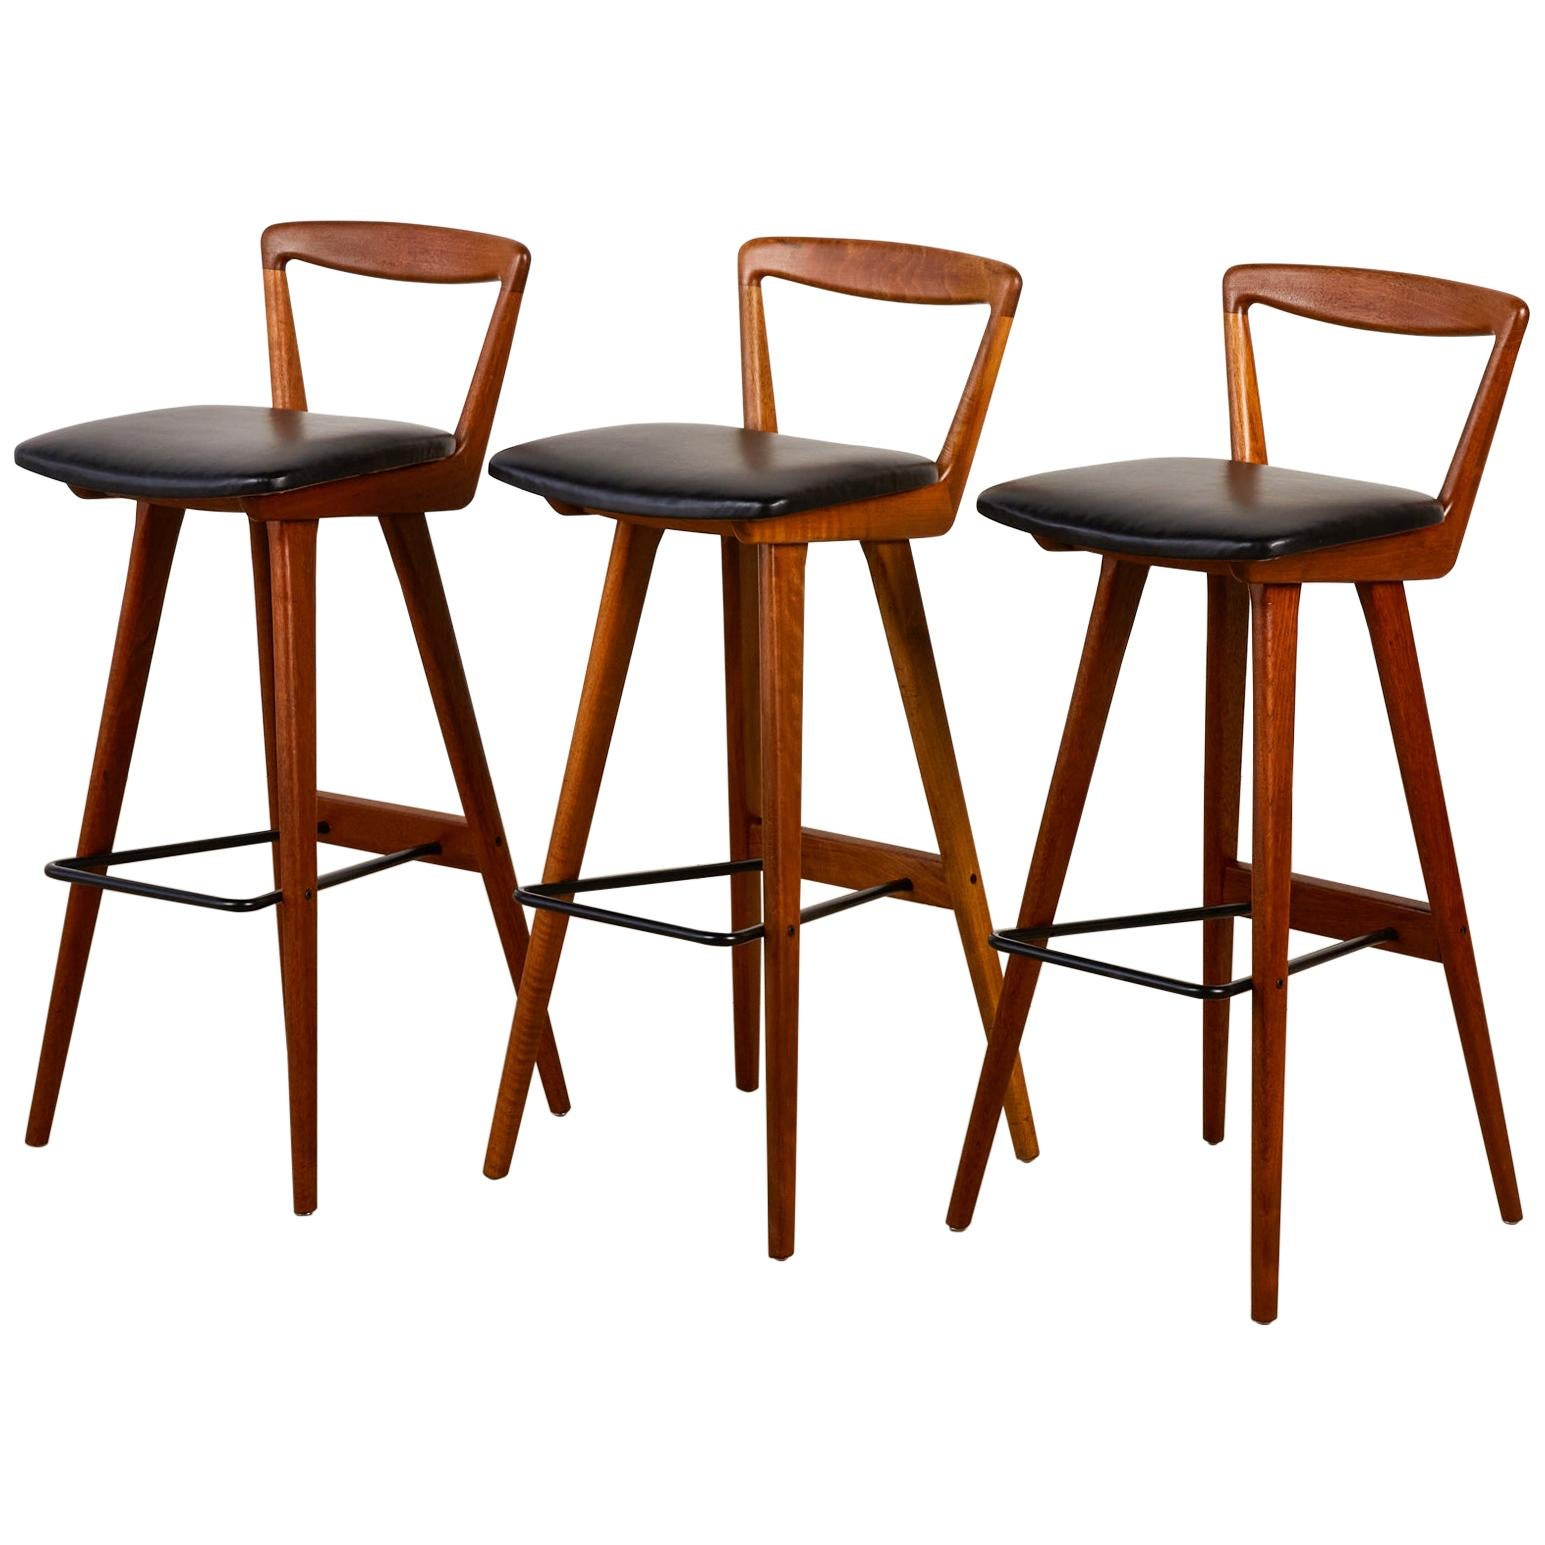 Set of Three Henry Rosengren Hansen Bar Stools